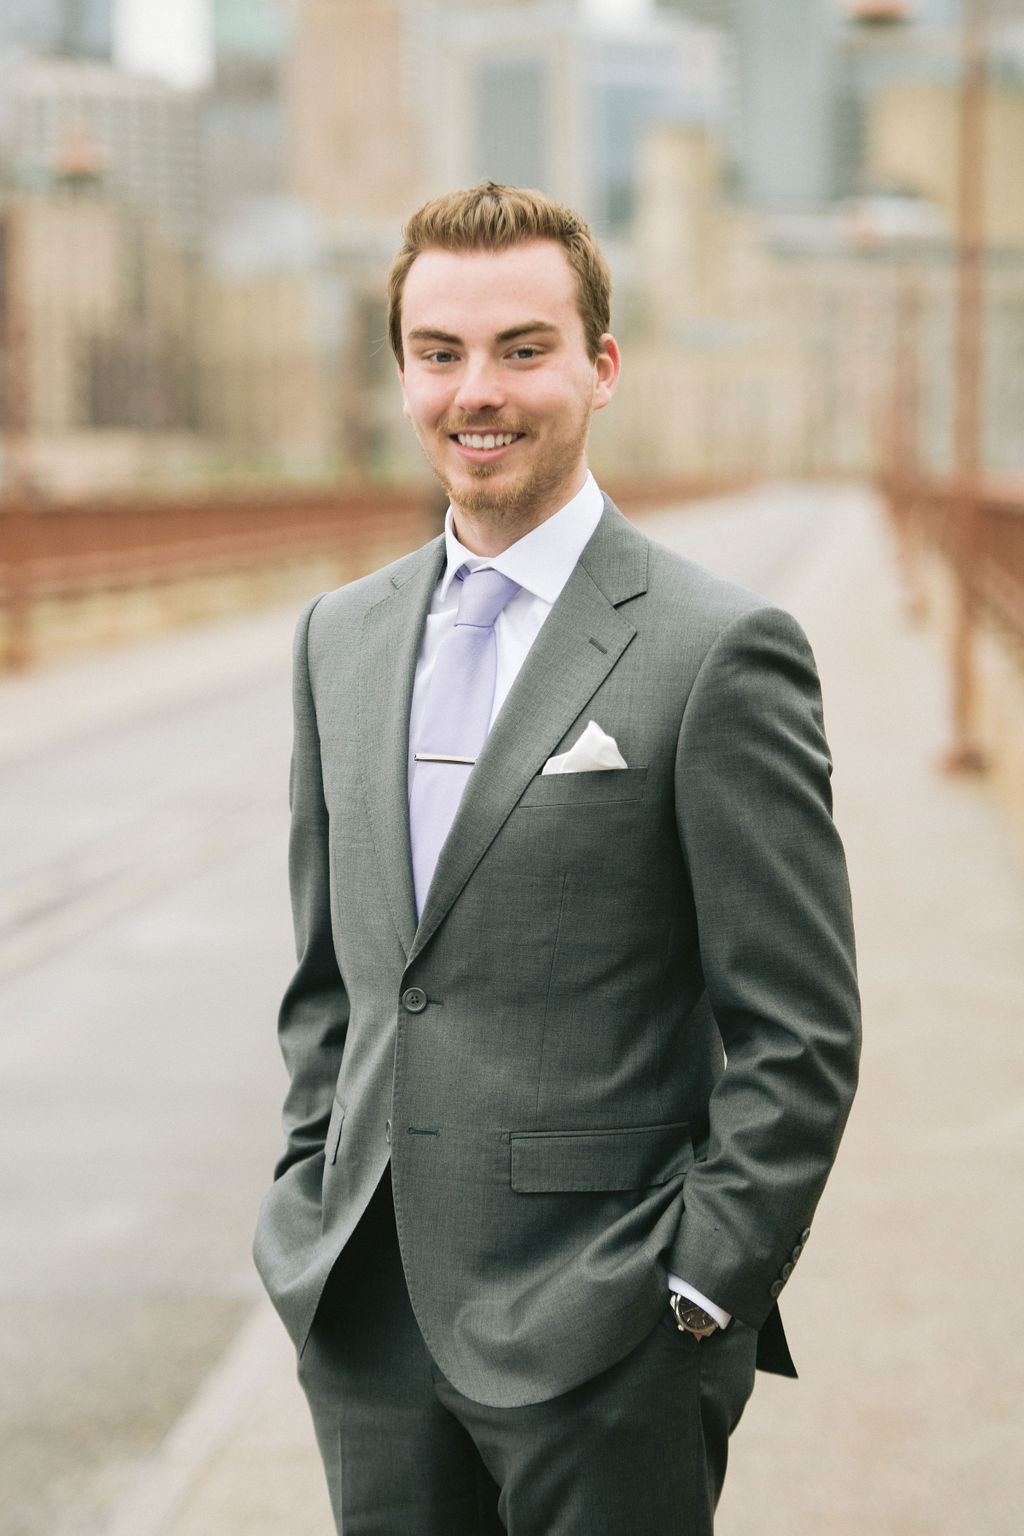 Cody is a Education Specialist and Advisor at the Great Waters Financial Central Office.